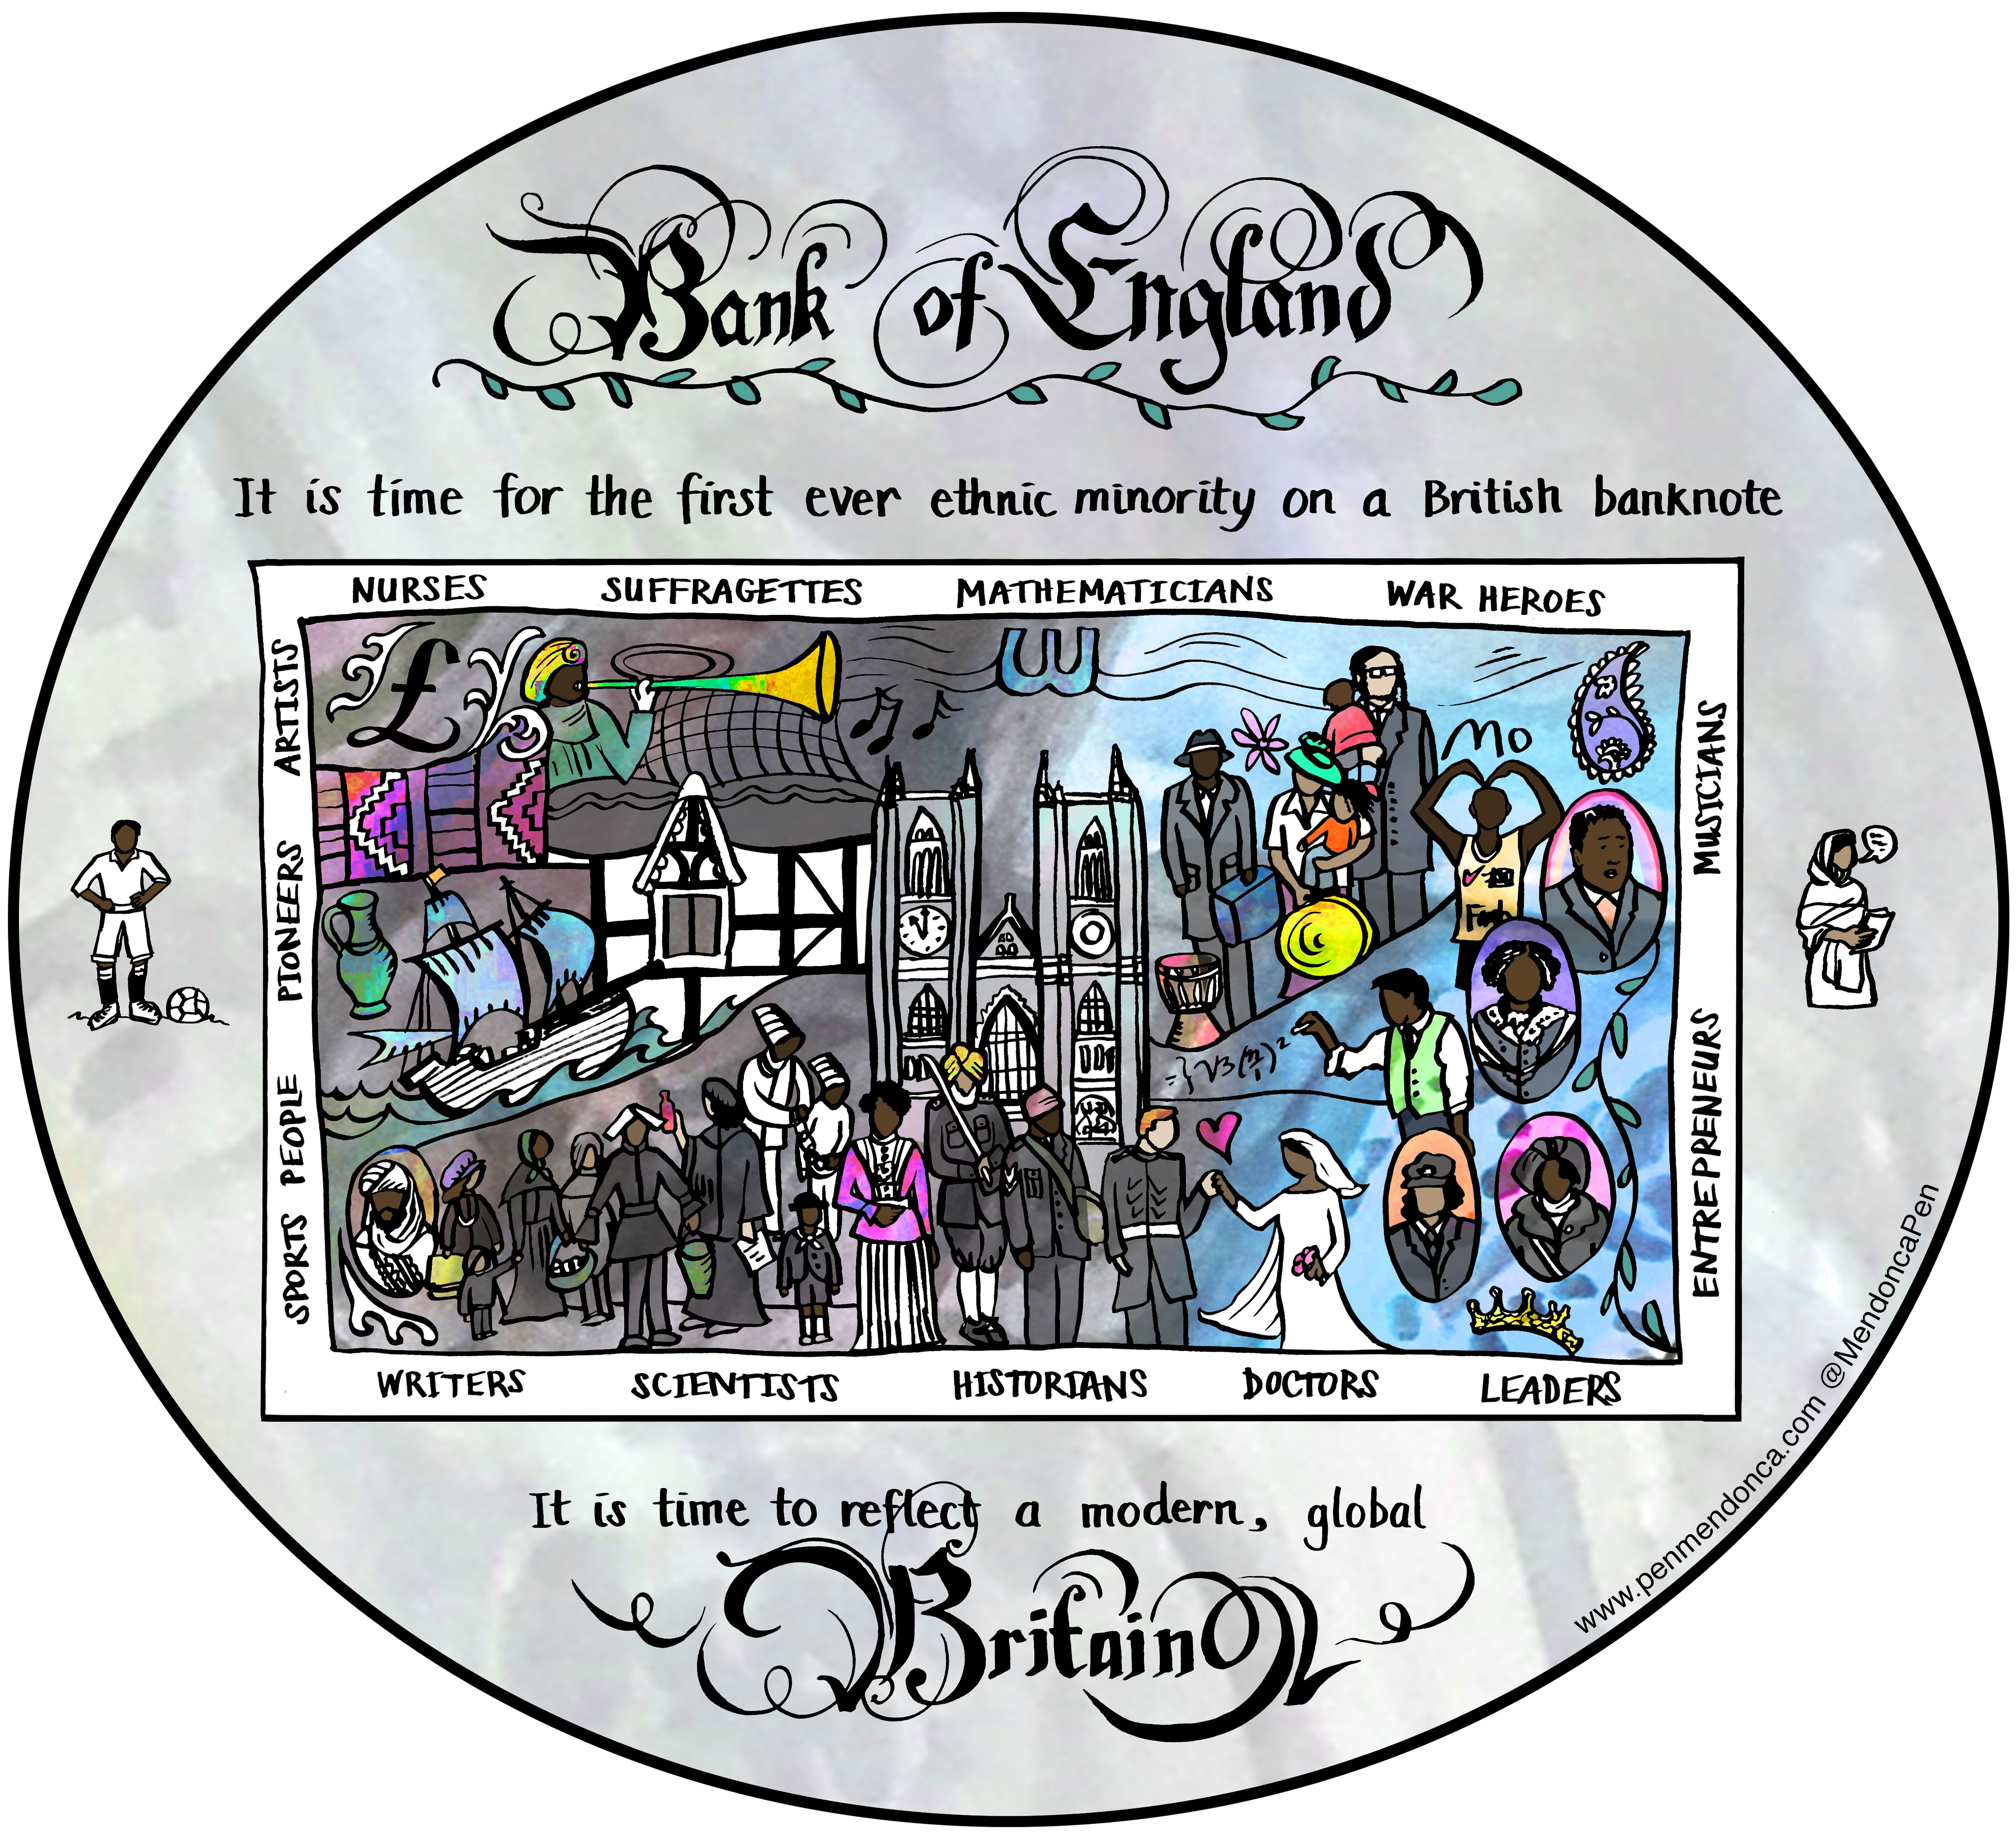 Our banknotes must feature ethnic minorities if we are to reflect modern Britain